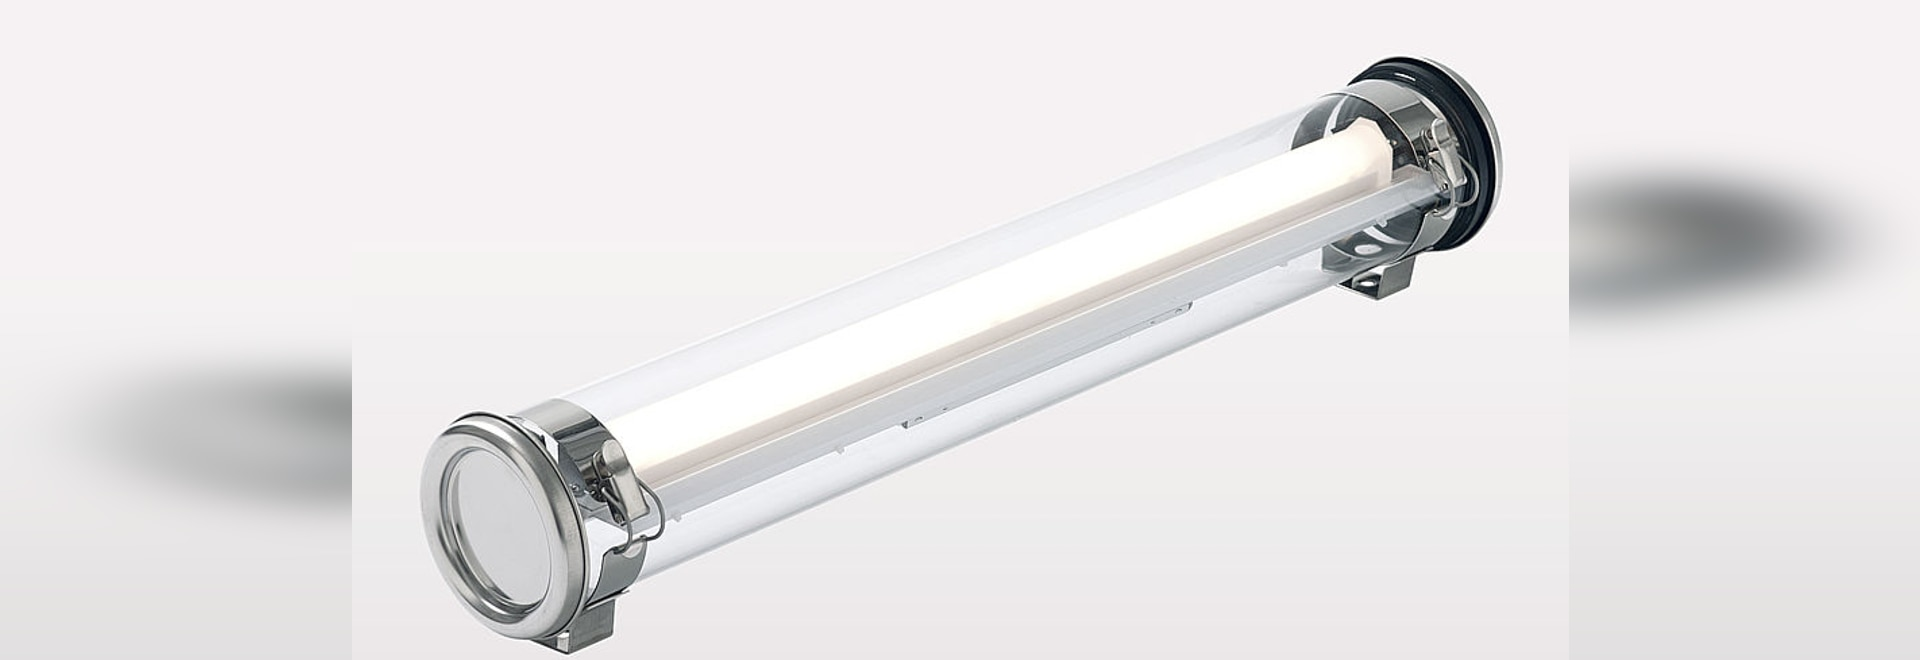 JAMIN 100, the compact LED luminaire for ATEX zones 2, 21 and 22.